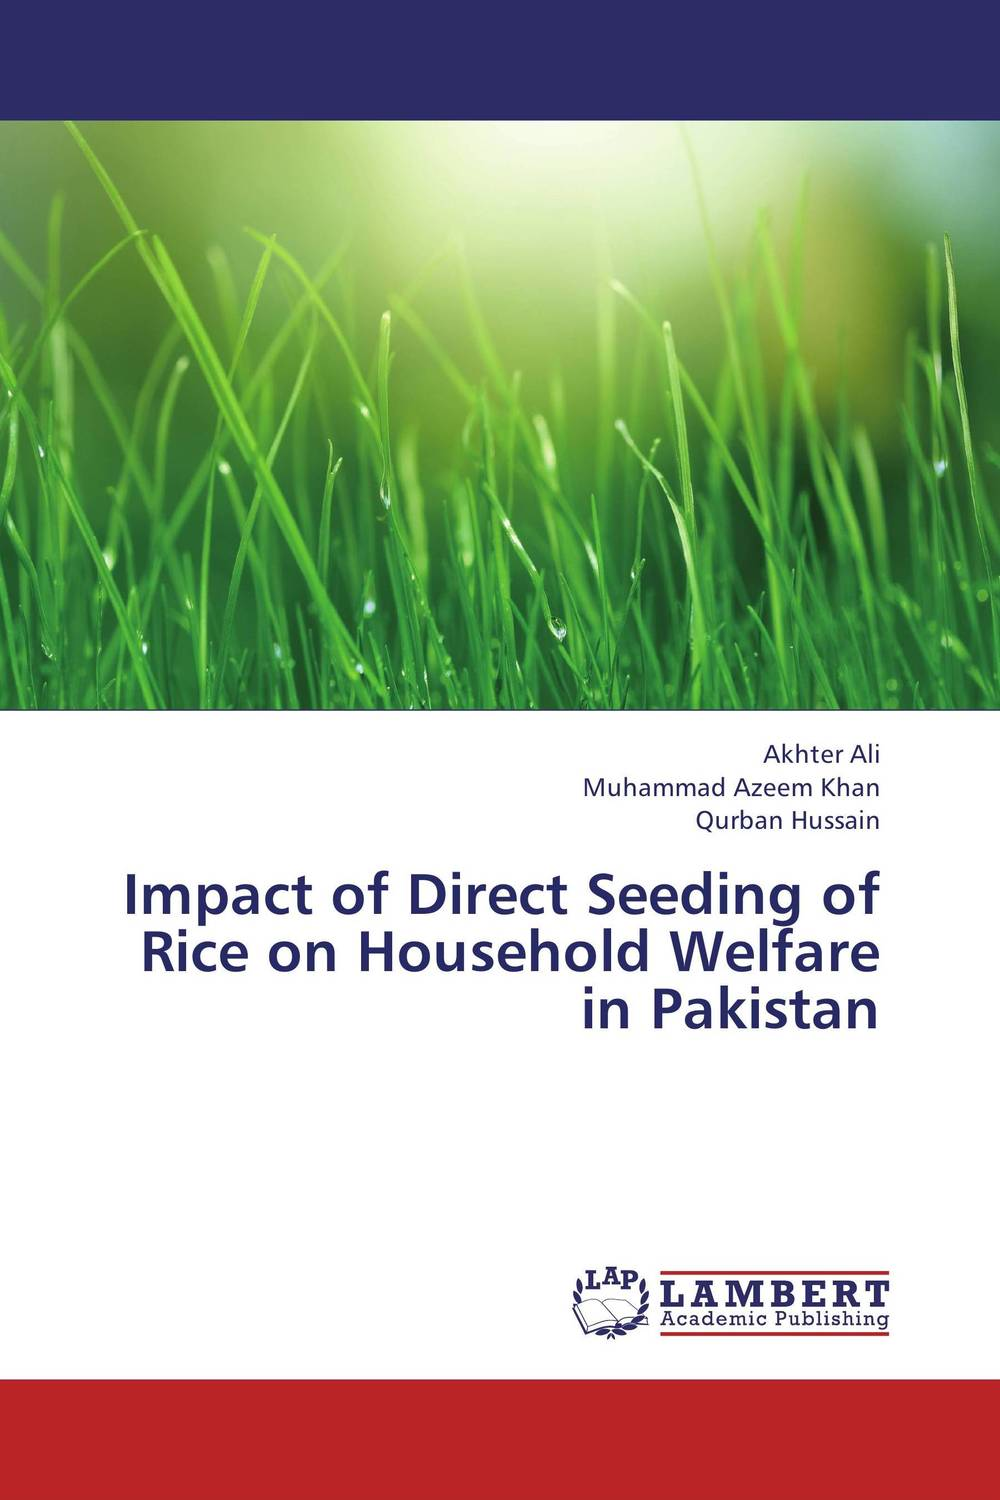 Impact of Direct Seeding of Rice on Household Welfare in Pakistan zero tillage technology in rice wheat cropping system of pakistan